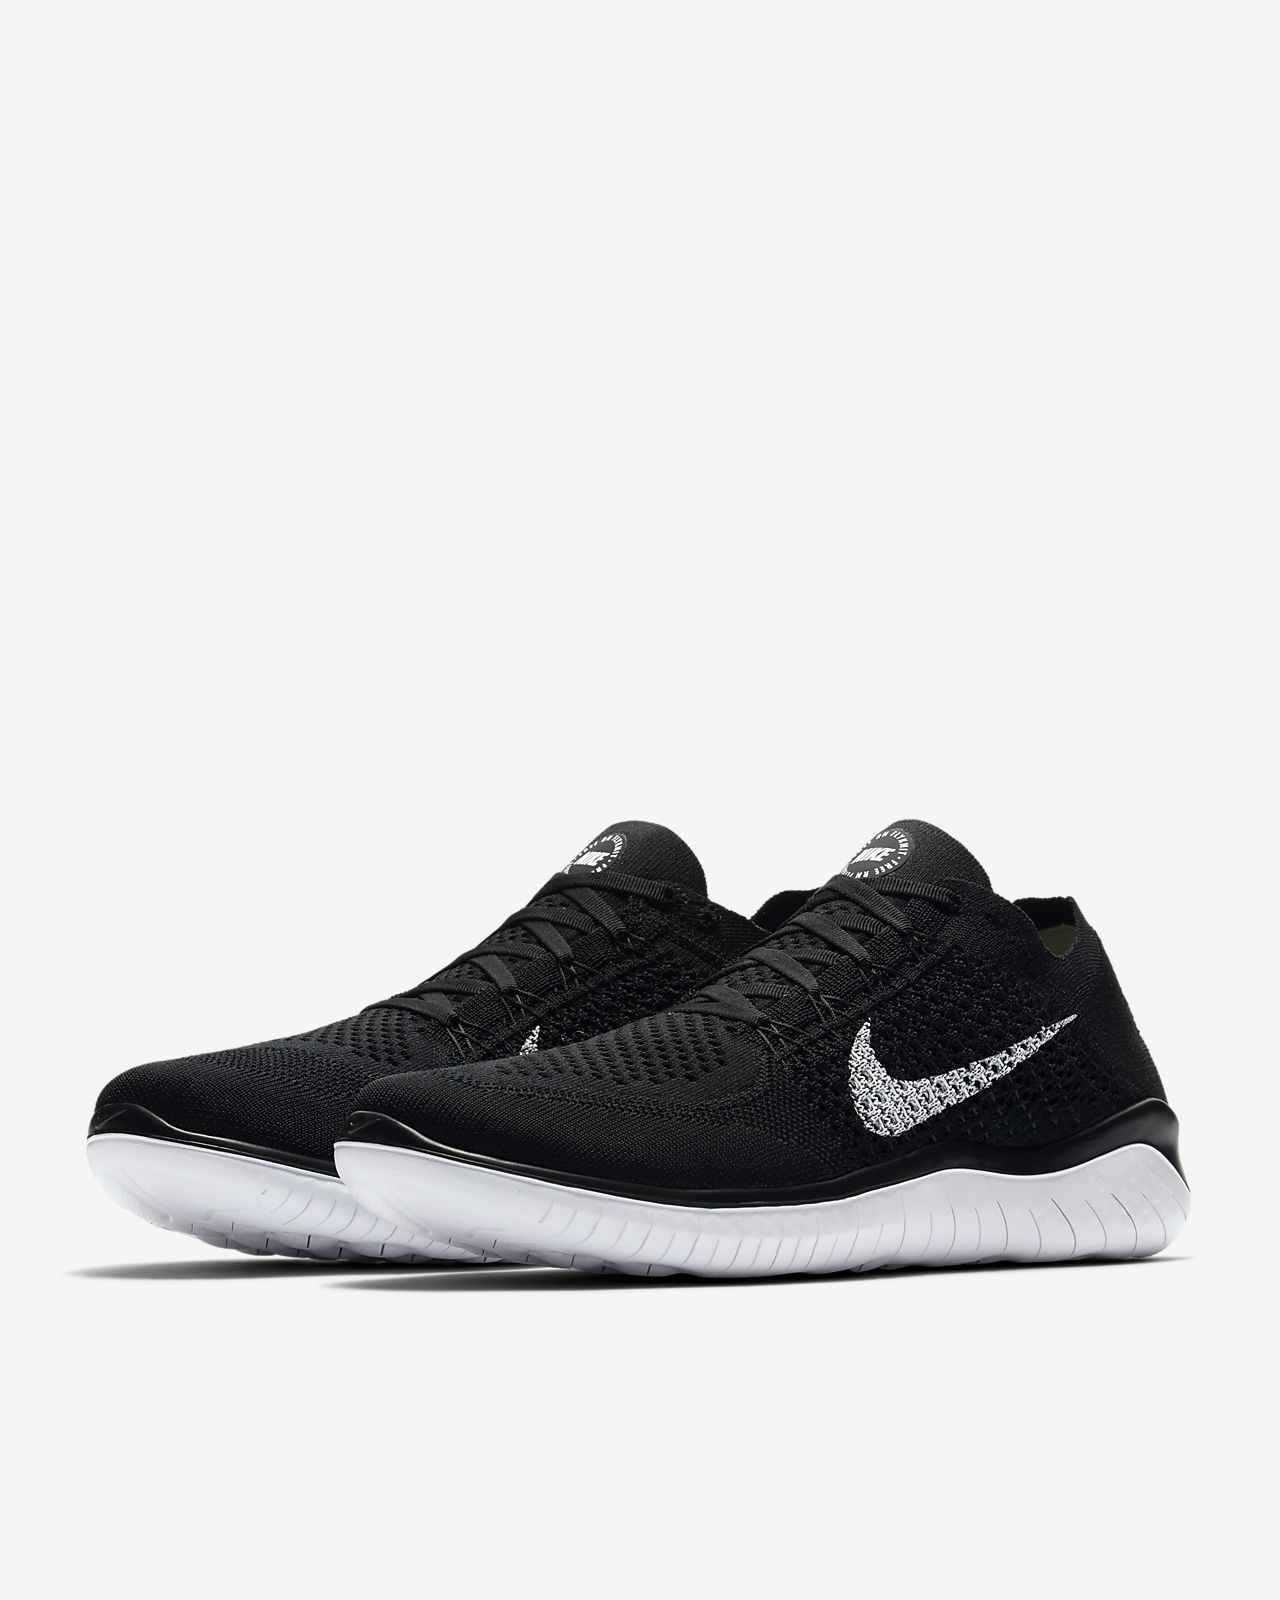 Nike Free RN Flyknit 2018 Mens Running Pure Platinum Black Anthracite 942838 101